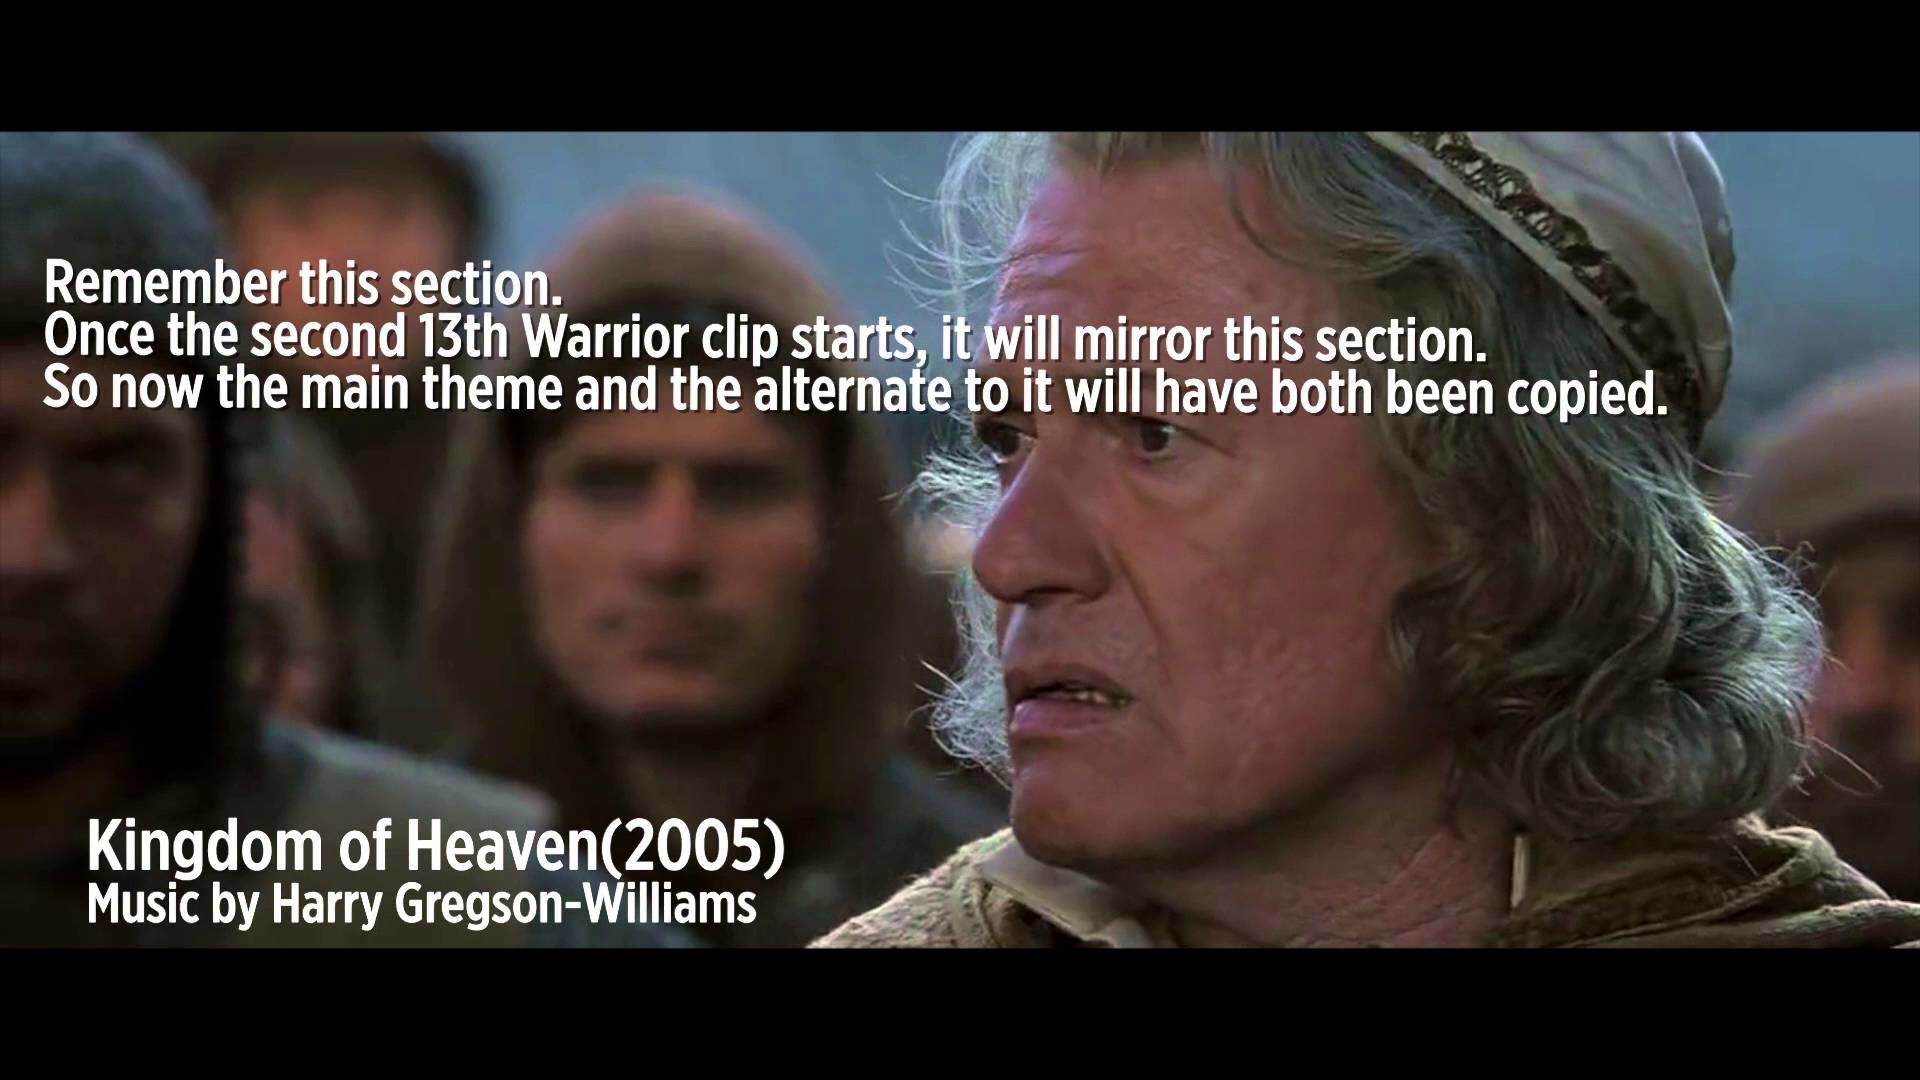 FilmFuns #2 : Kingdom of Heaven steals from The 13th Warrior